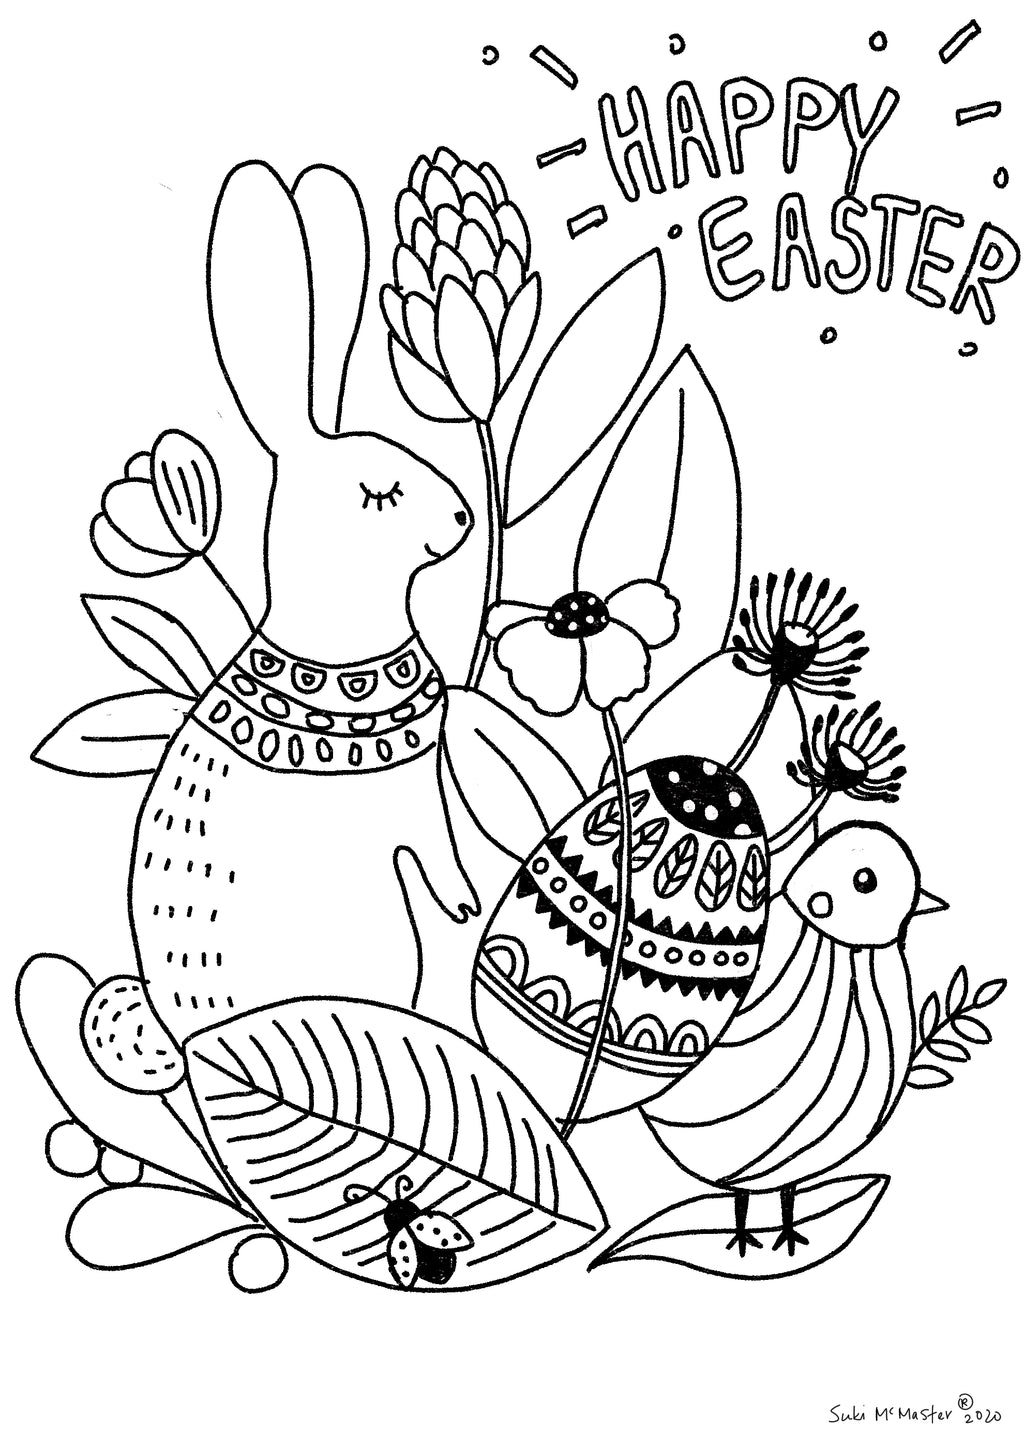 Easter Holiday Colouring In - Free Printable